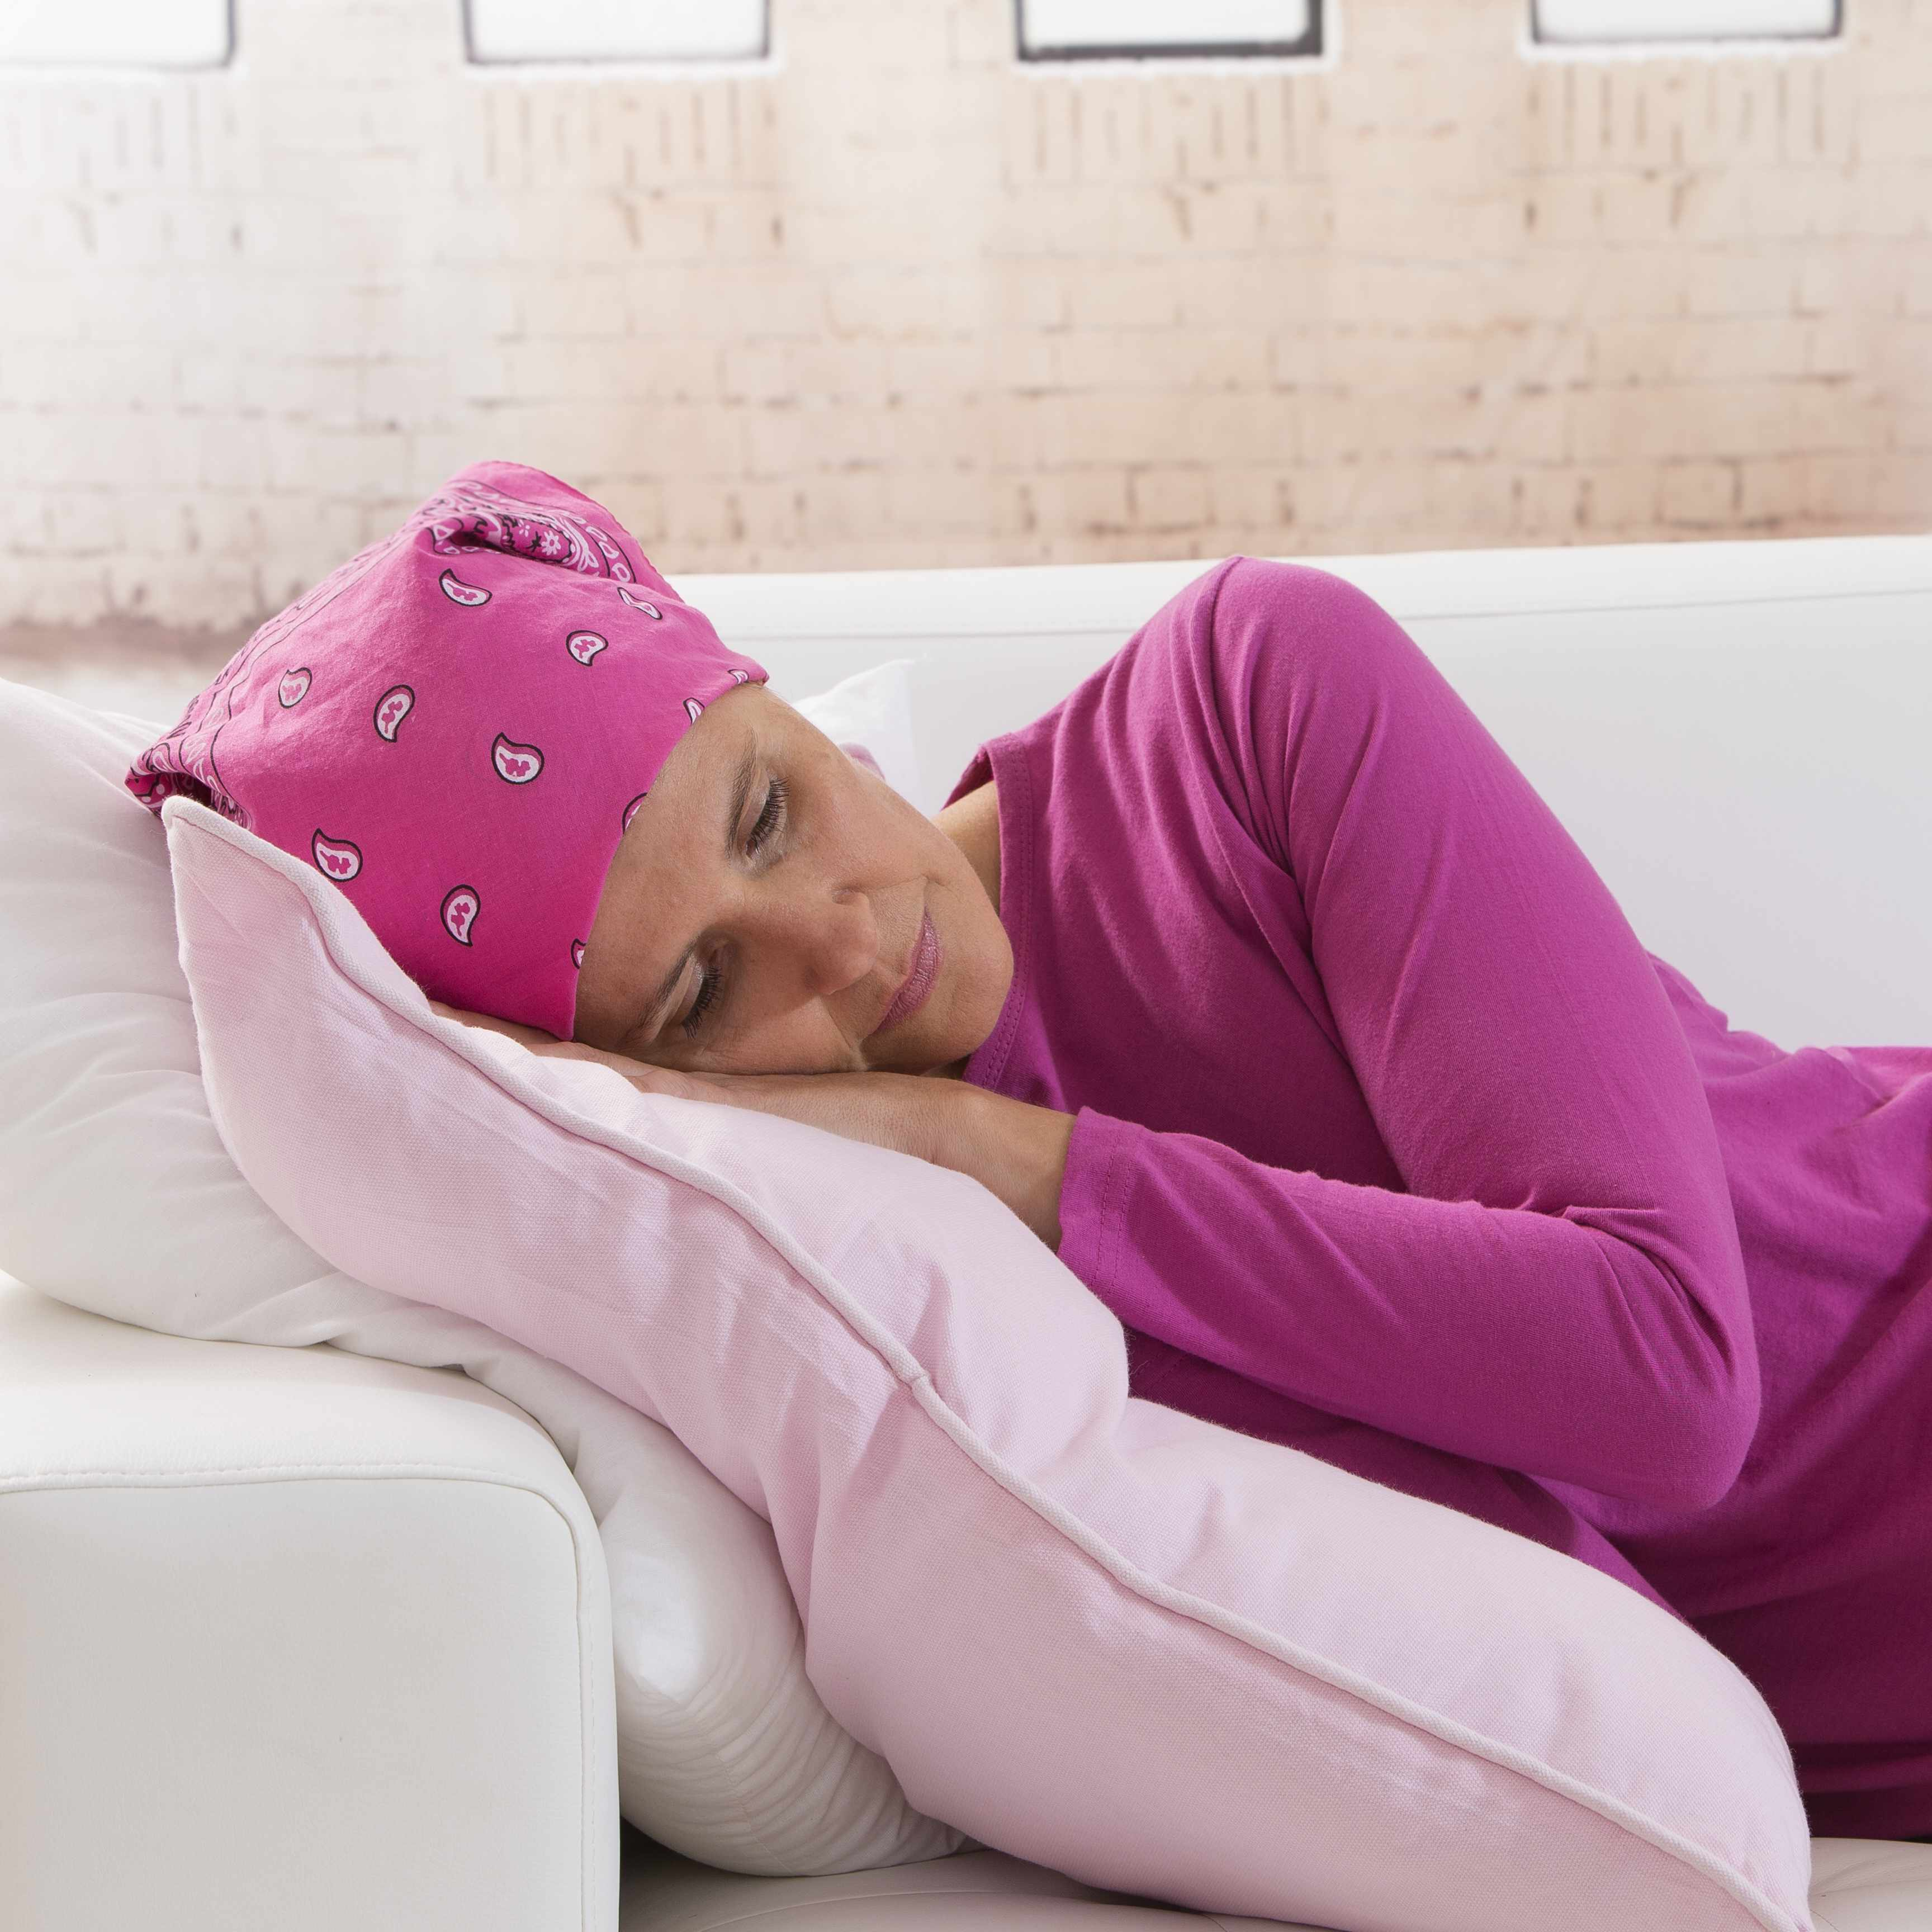 a woman lying on a couch, with a scarf over her head, looking tired, sad